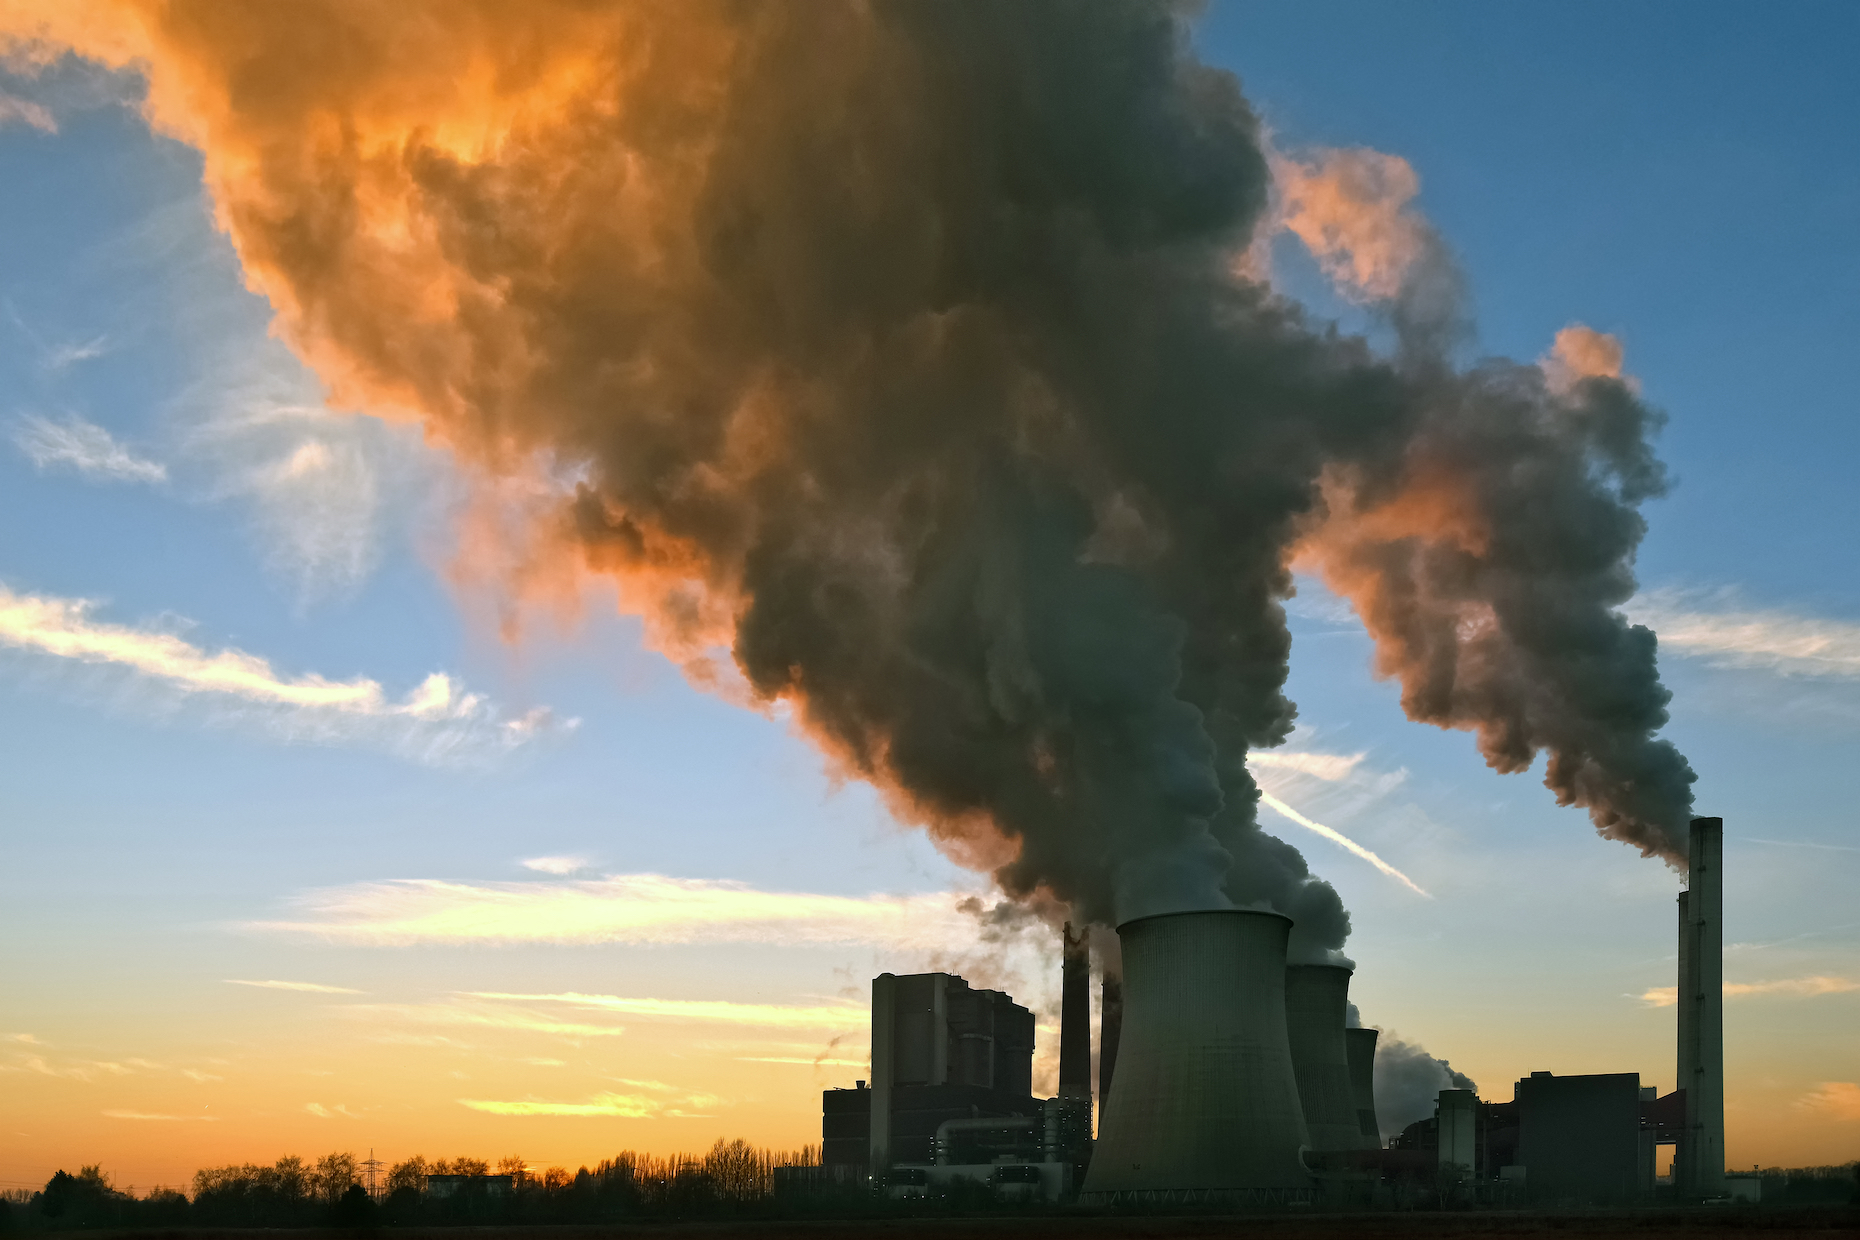 A global analysis of greenhouse gas (GHG) emissions has revealed that CO2 levels have stalled for the third consecutive year.